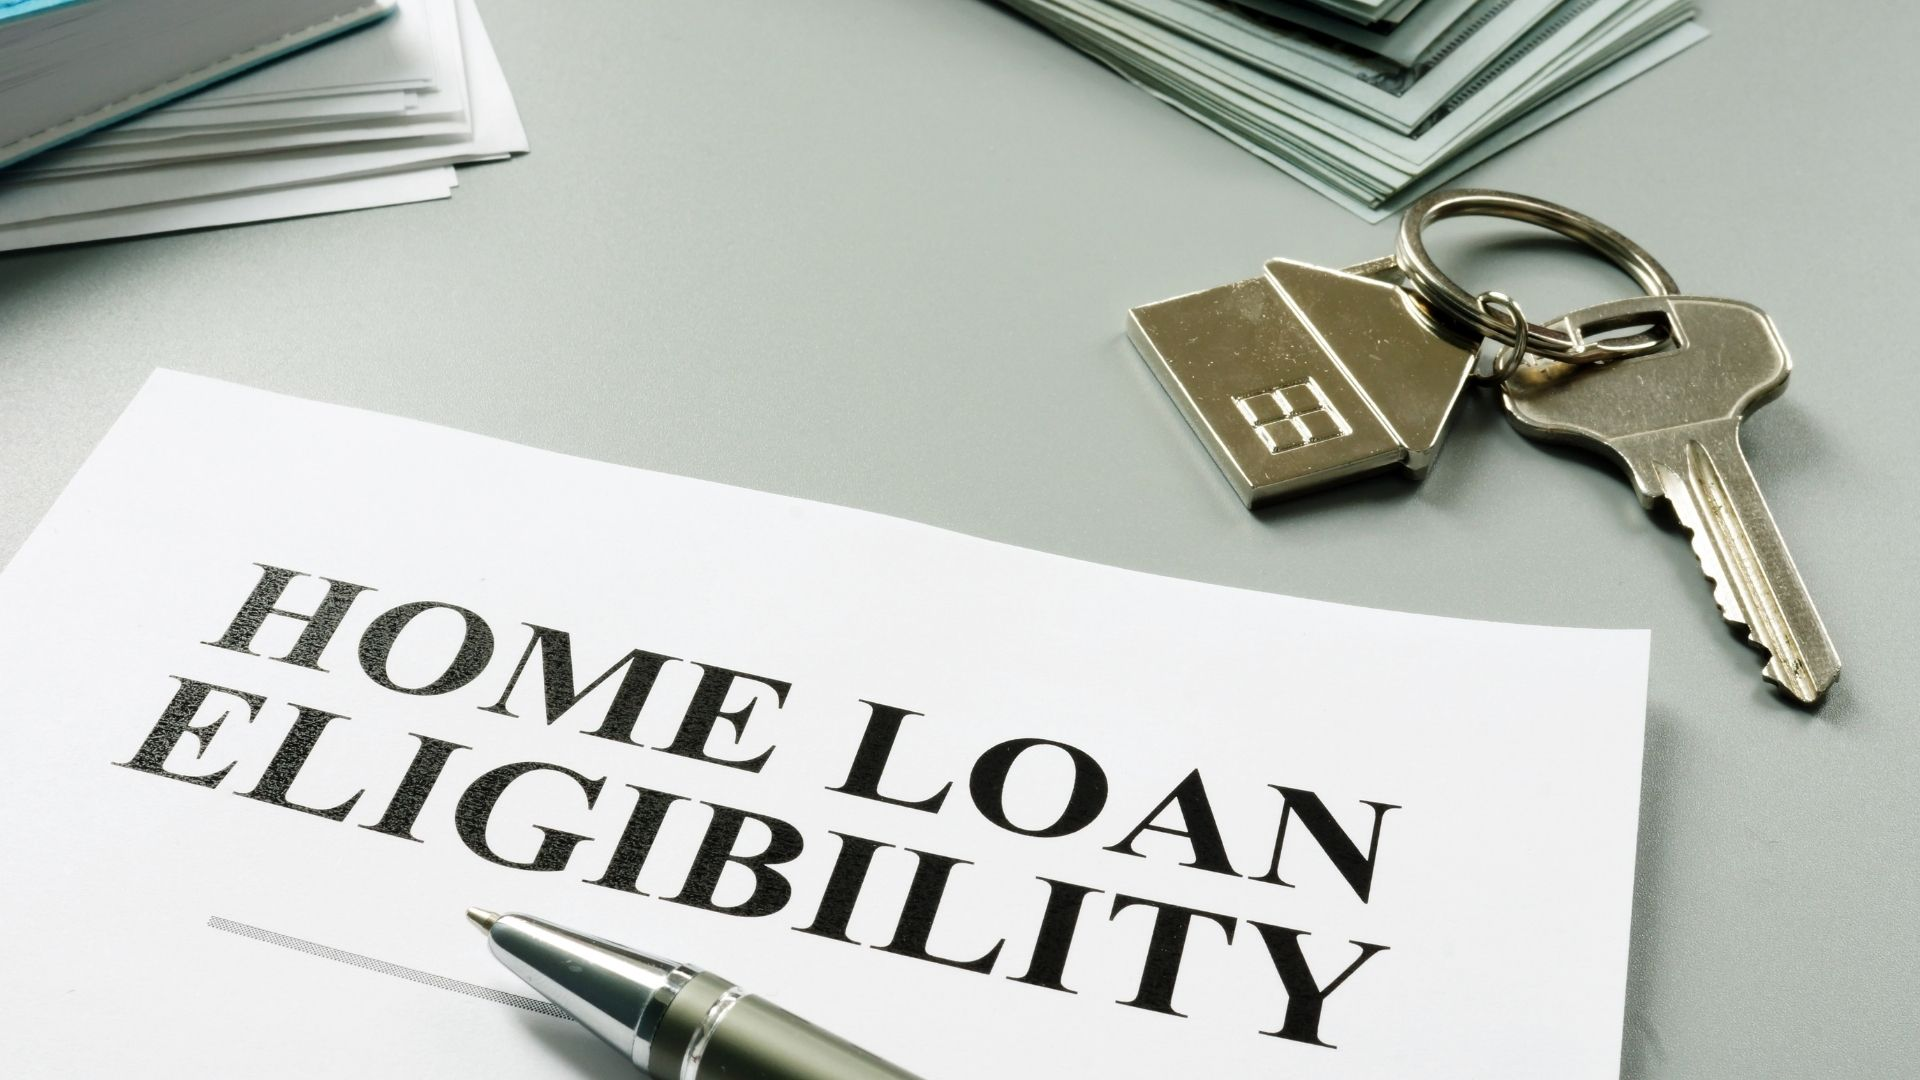 5 Crucial Things to Know Before Applying for a Home Loan